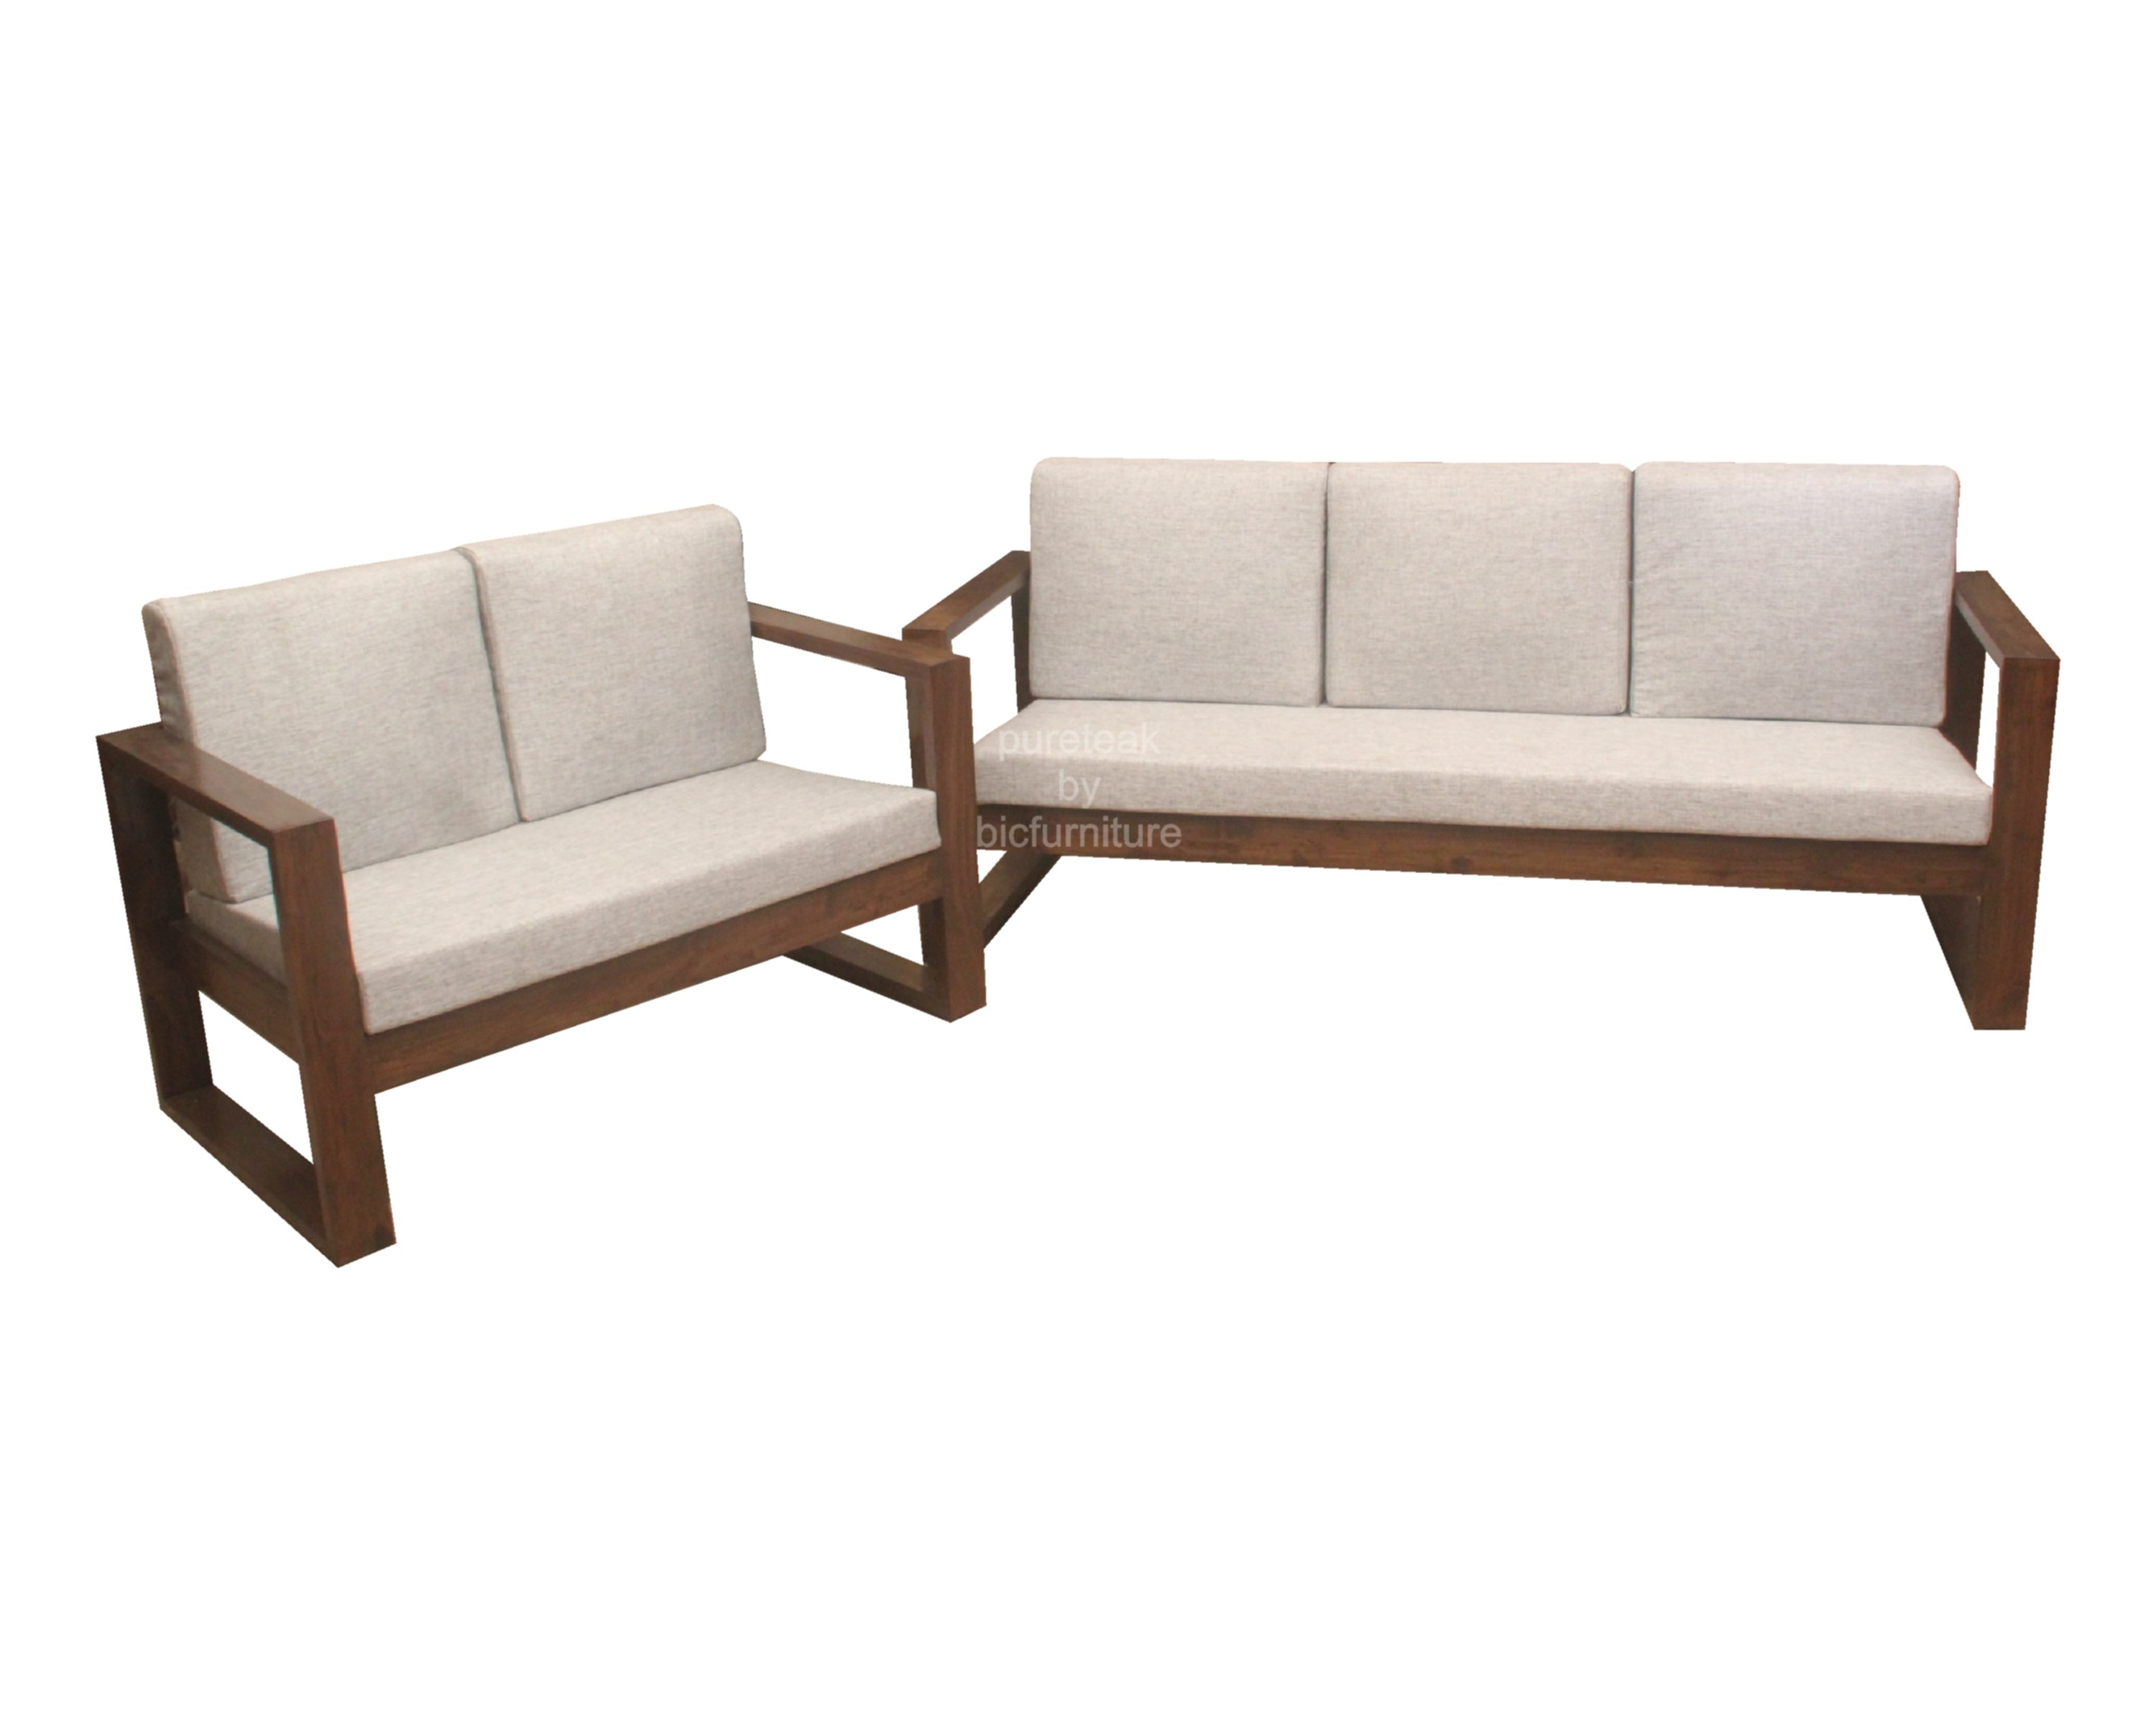 Front_View_Of_3_seater_Sofa_In_Teak. Sofa_With_Simple_Strip_In_Square_Form.  Teak_Wood_2_Seater_Sofa_Front_View. Teak_Wood_2_Seater_Sofa_In_Square_Design